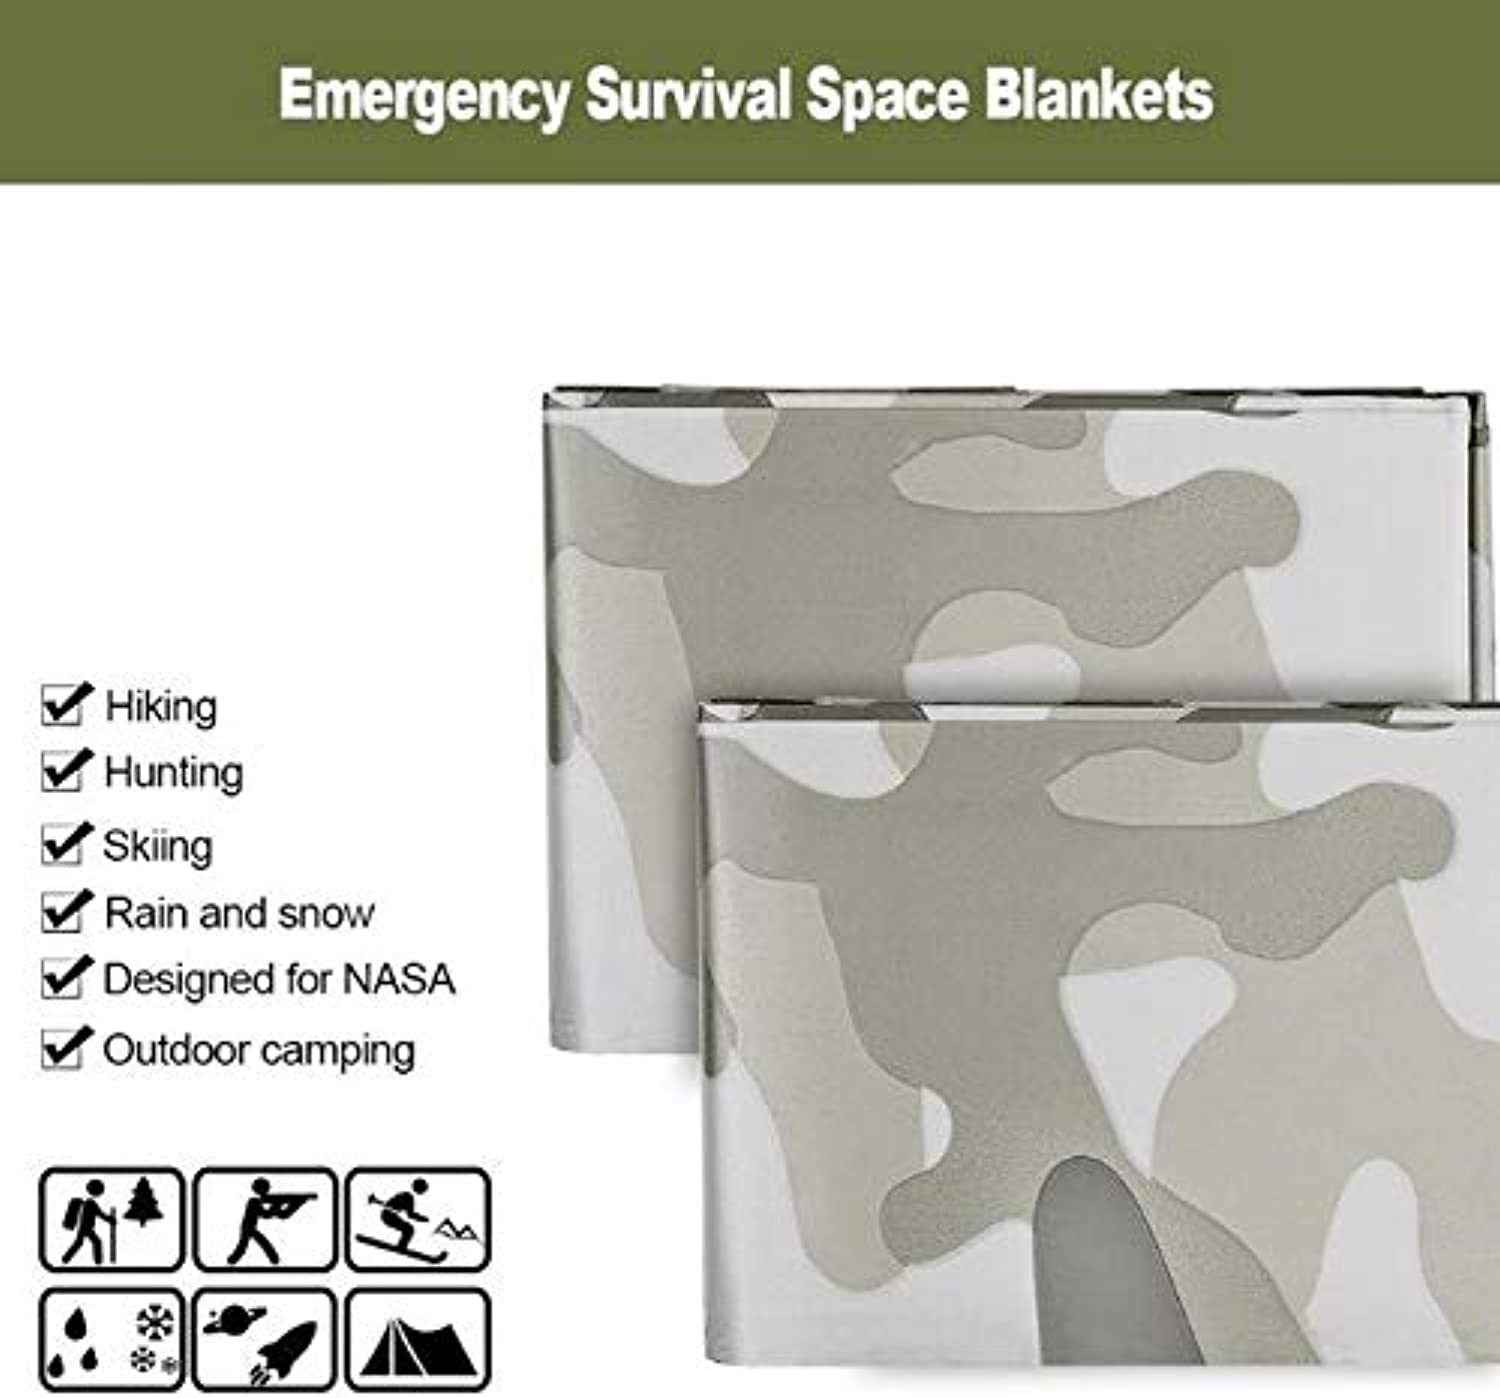 3pcs Camouflage Emergency Blanket Survival Gear Mylar Survival Thermal Blankets fgoldutdoors Hiking Marathon Bug Out Bag   White